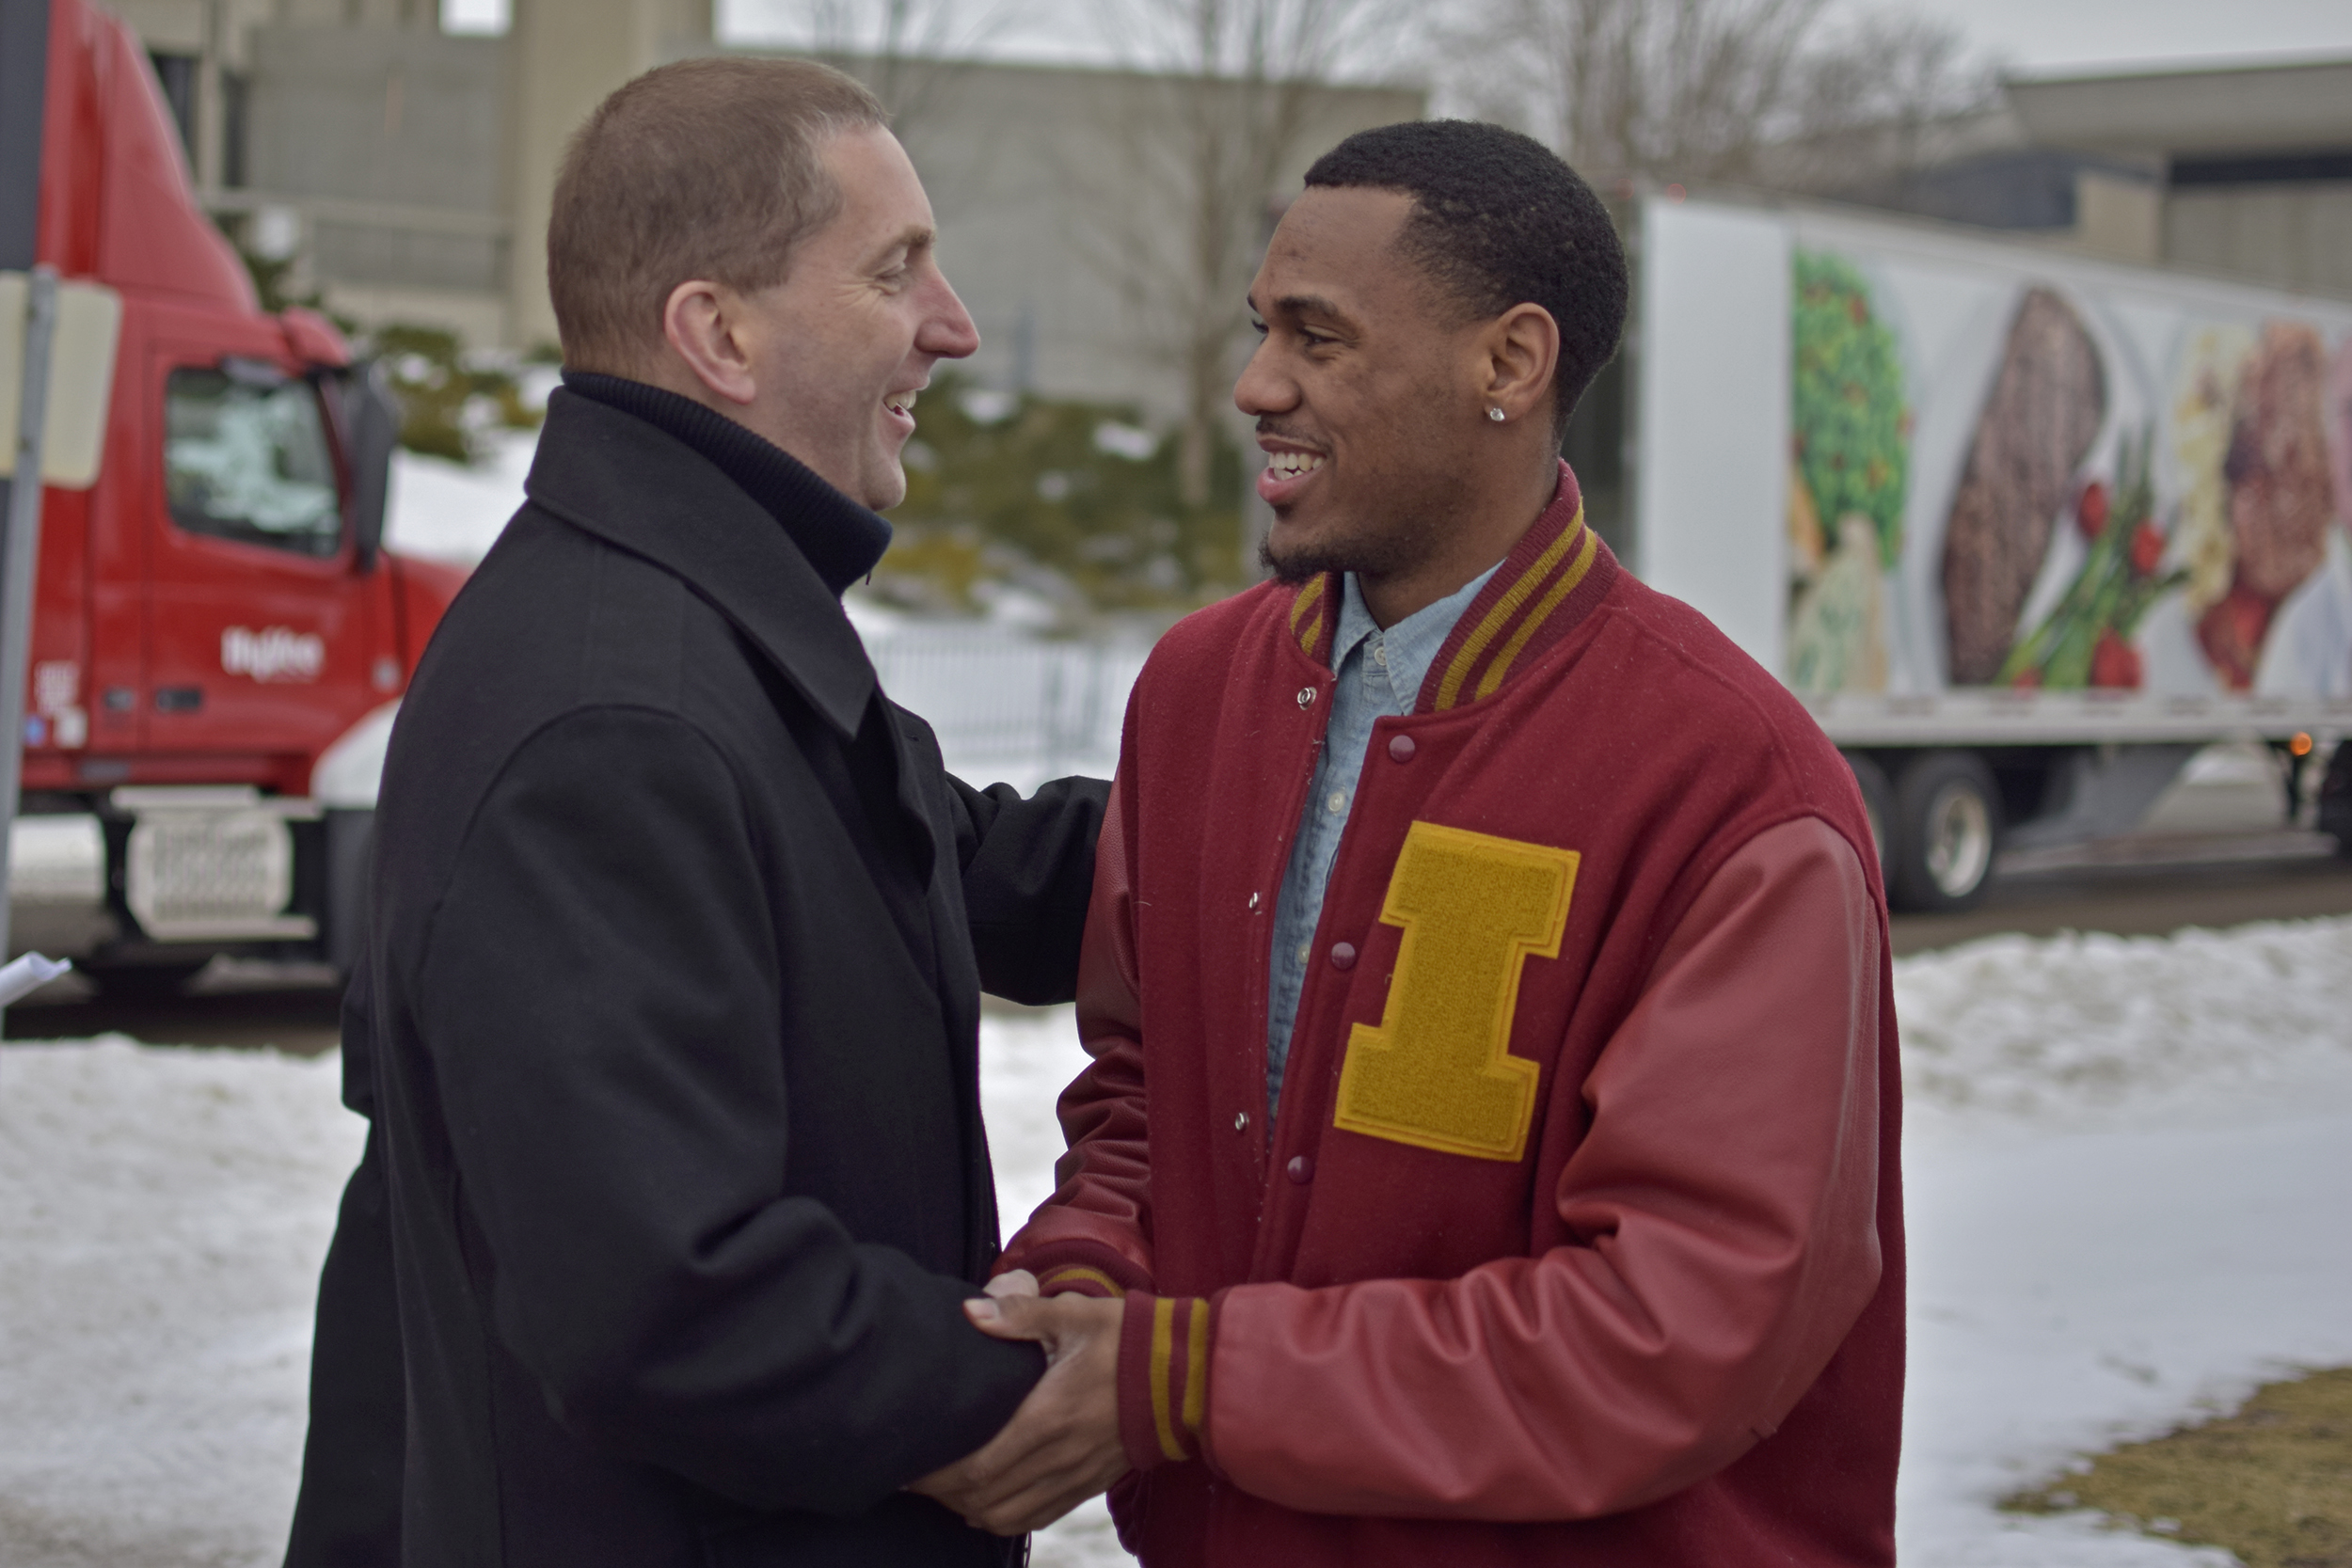 Iowa State Athletic Director Jamie Pollard and point guard Monte Morris talk outside of Hilton Coliseum on Thursday before 11 Hy-Vee trucks filled with drinking water depart for Flint, Michigan.  RyanYoung/IowaStateDaily.